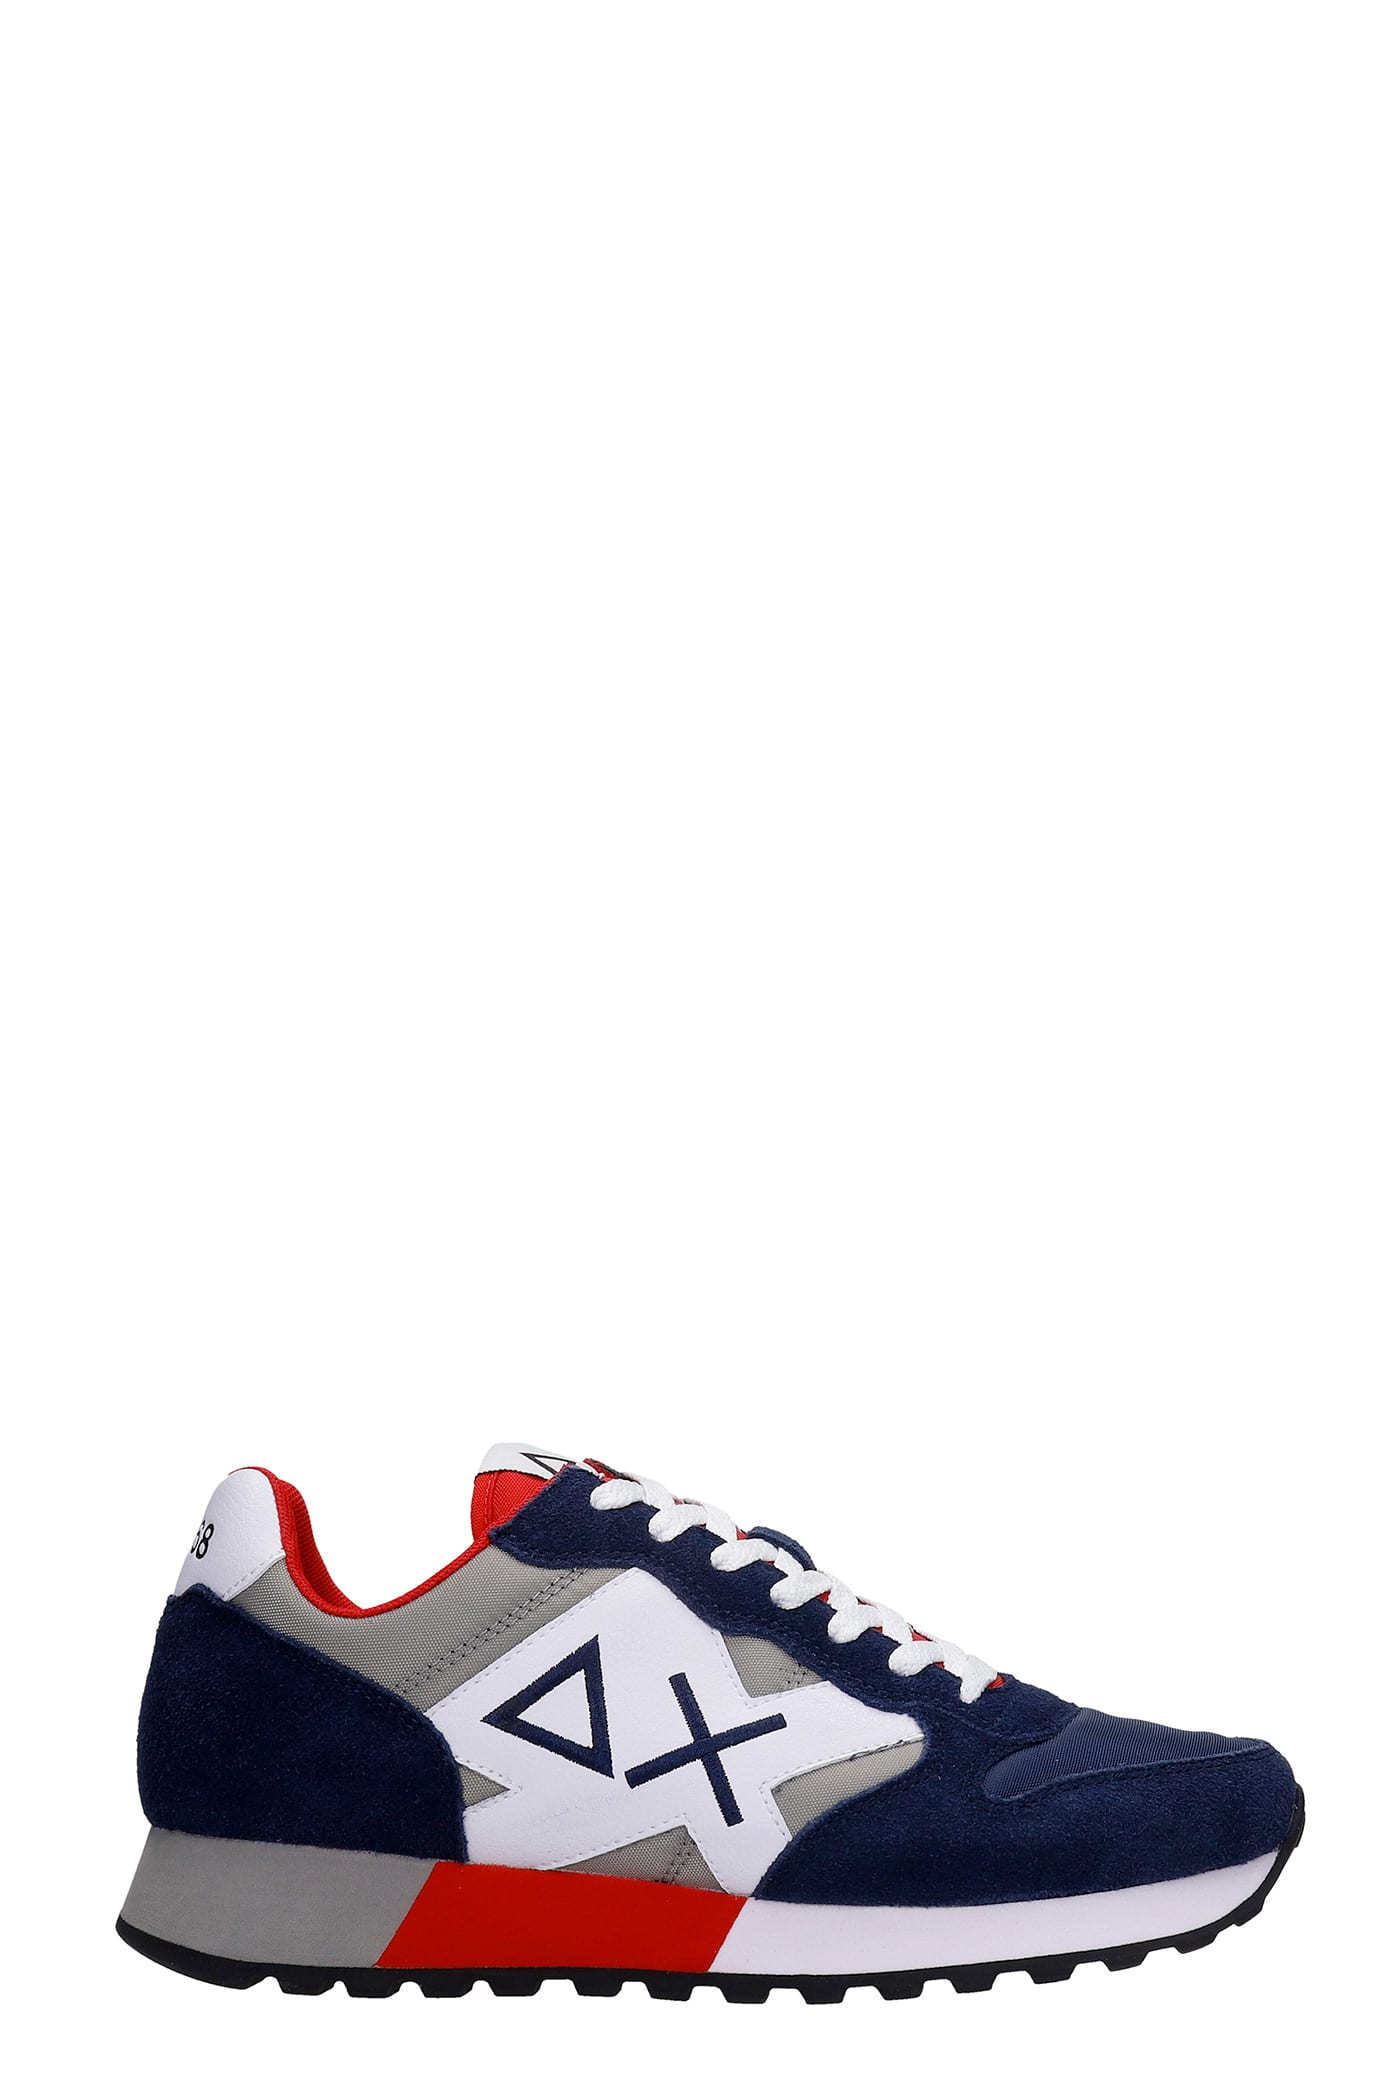 Sun 68 JAKI BICOLOR SNEAKERS IN BLUE SUEDE AND FABRIC